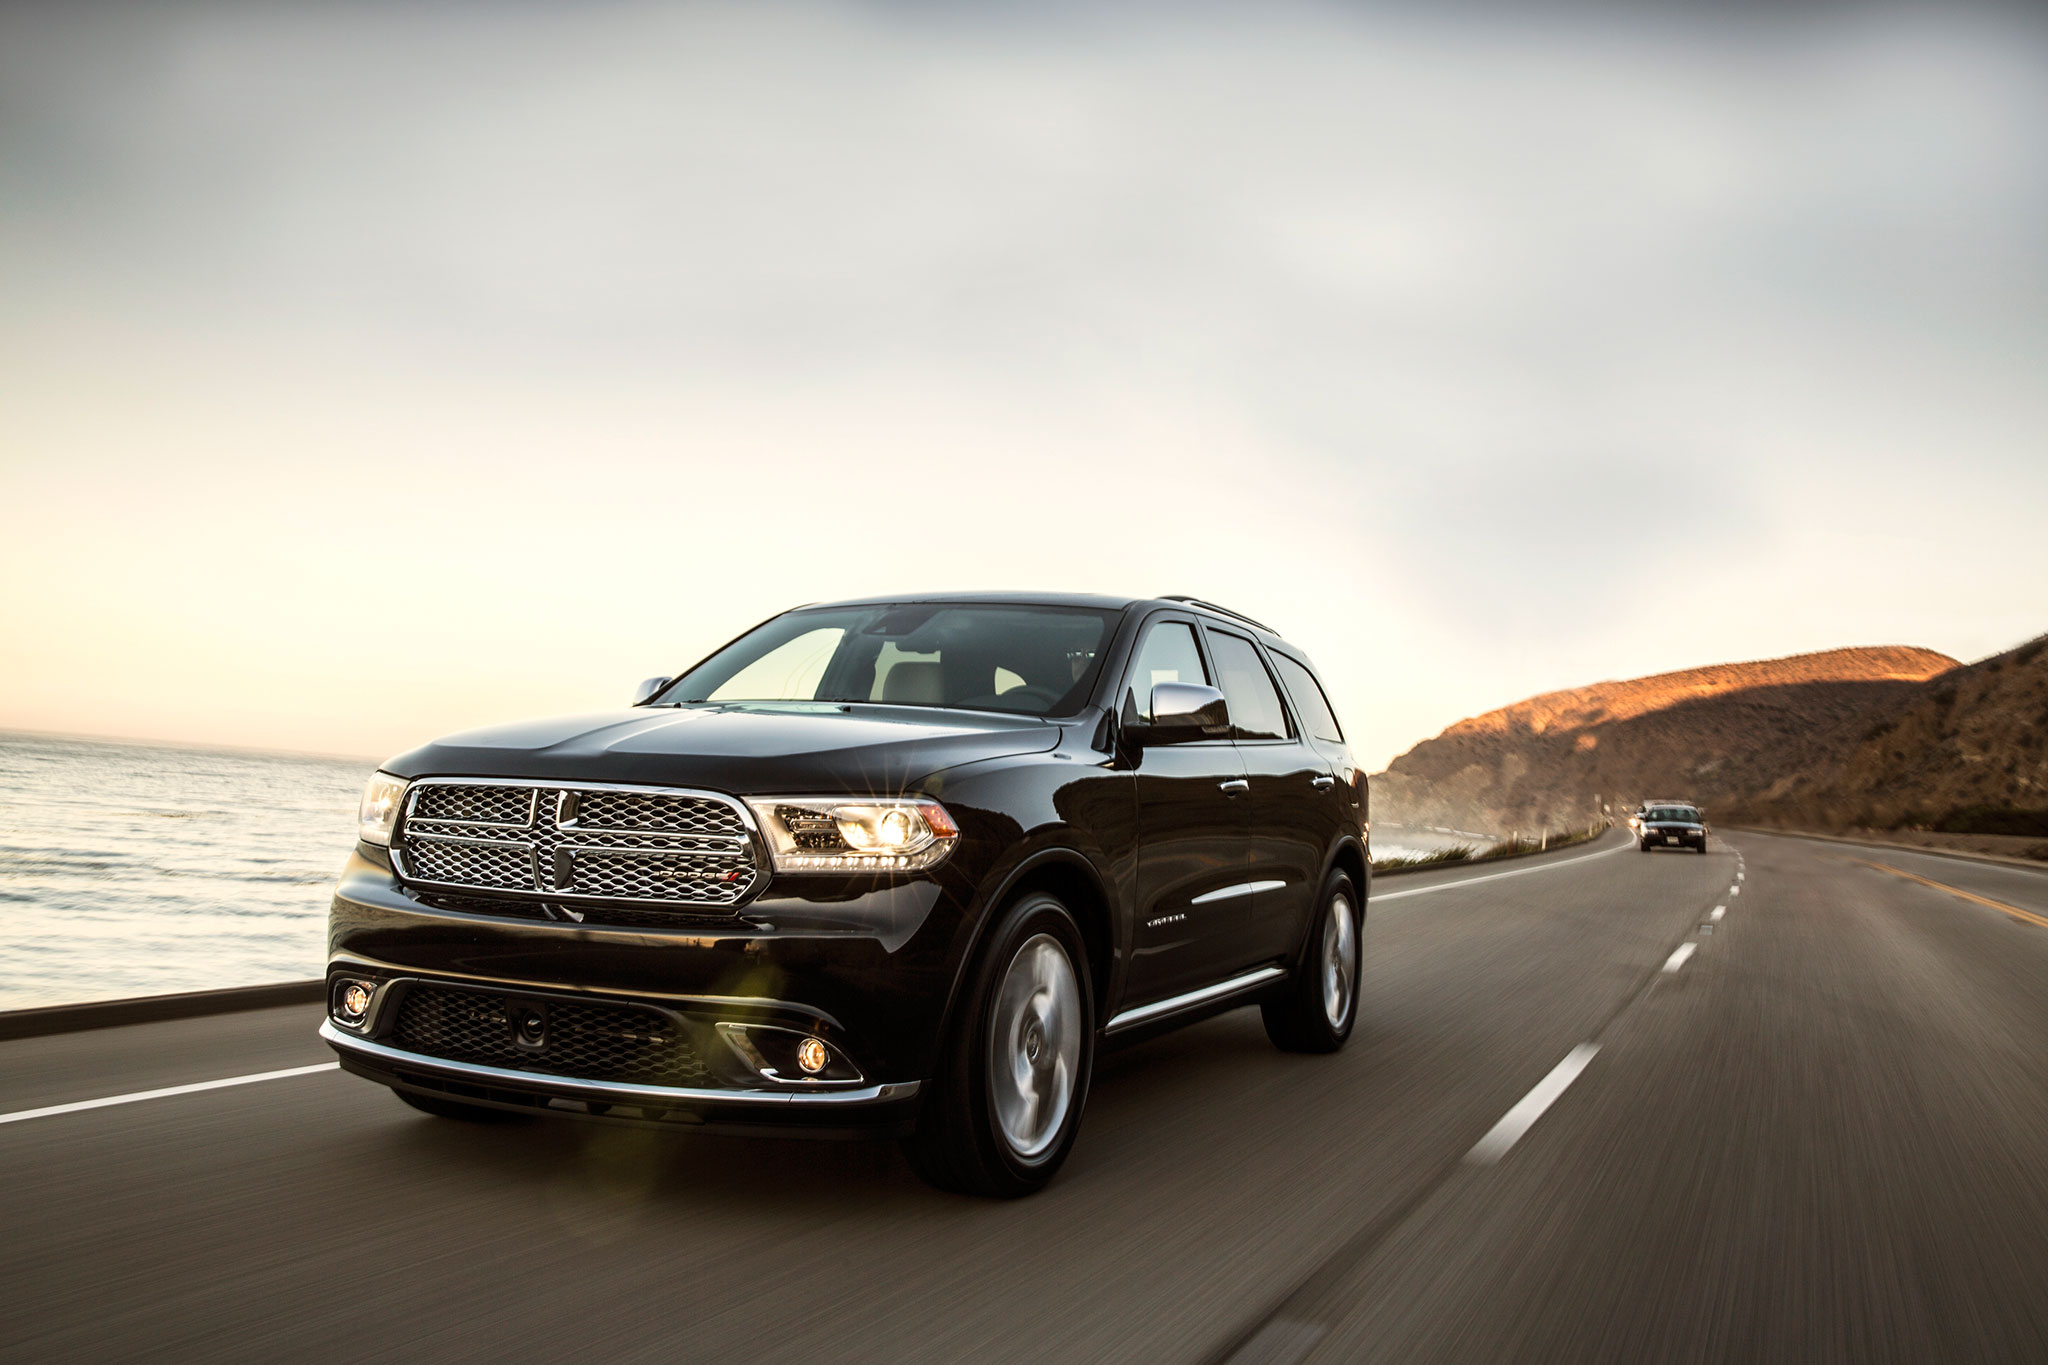 2014 Dodge Durango Citadel Drivers Three Quarters In Motion1